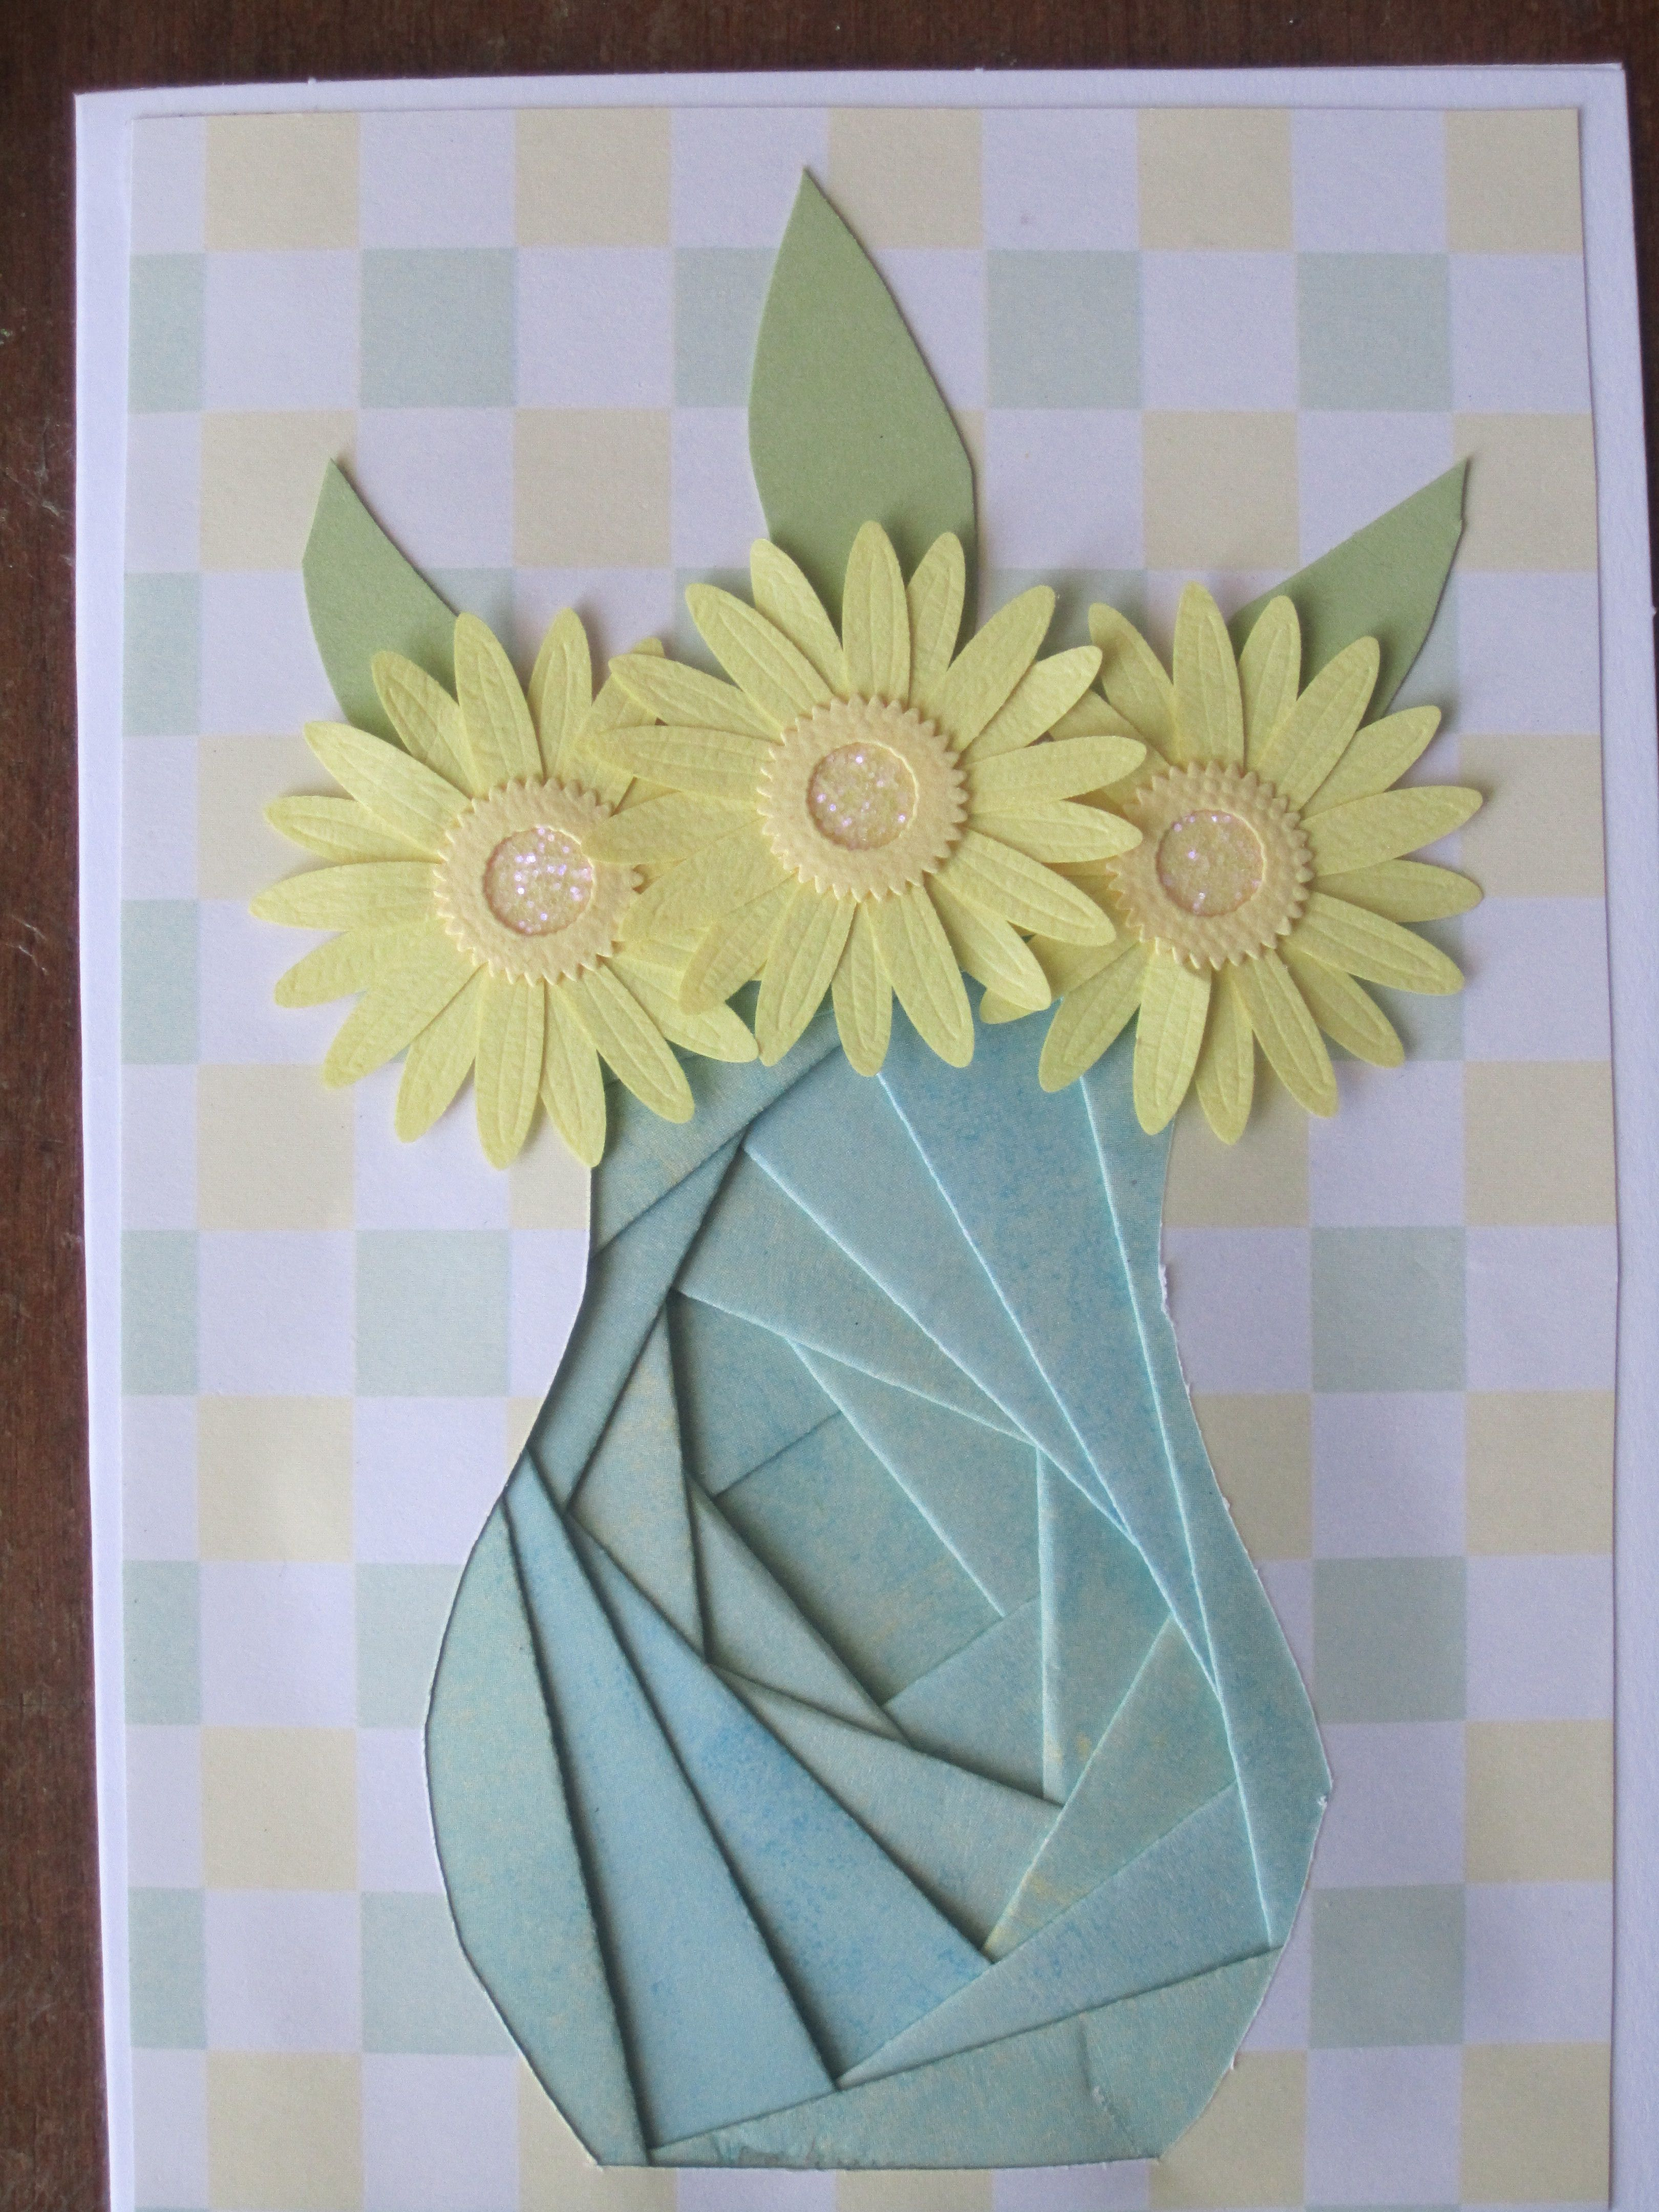 Iris Paper Folding Flowers In Vase Card Www Caguimbalcreations